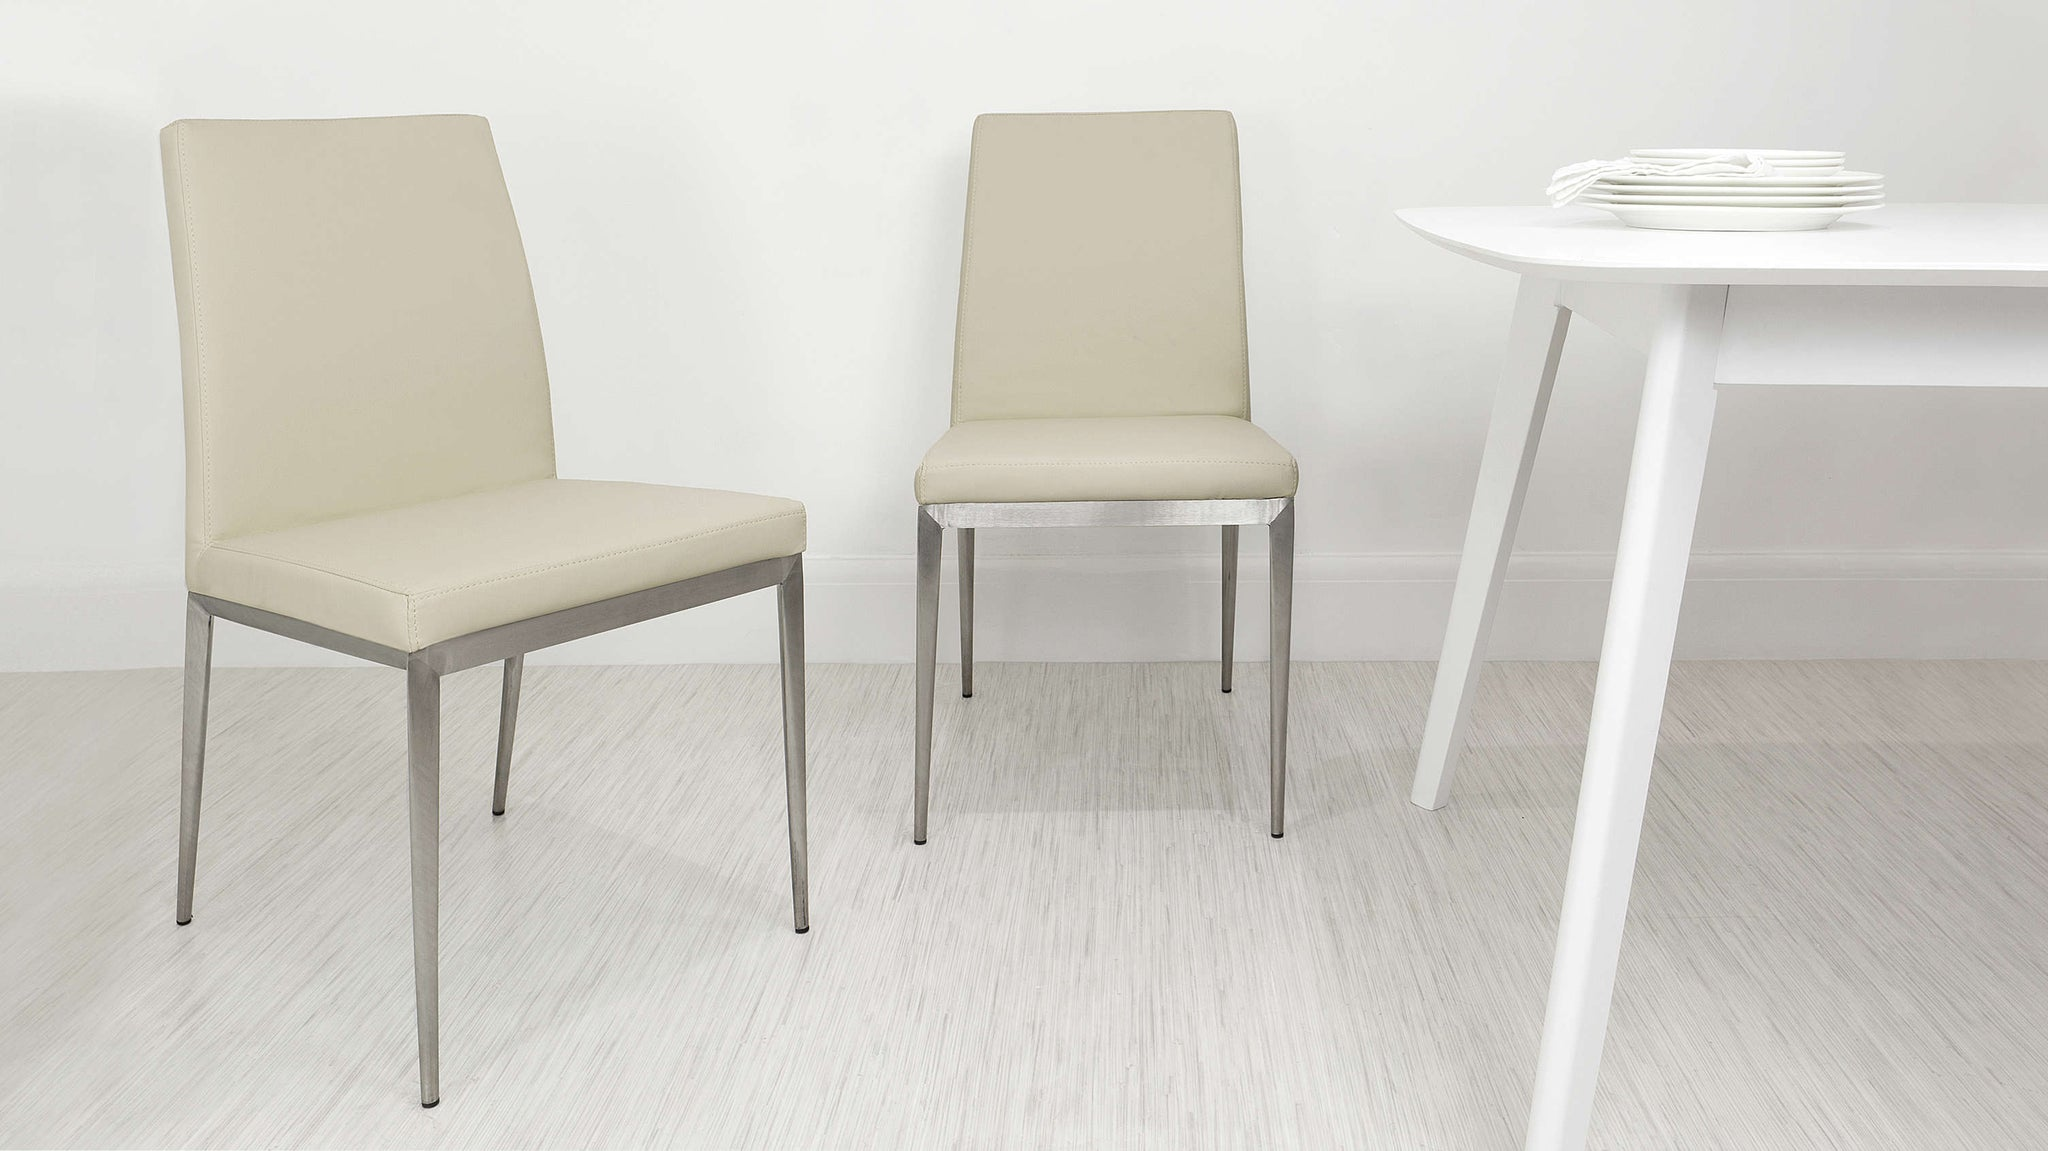 Modern Beige Dining Chairs with Metal Legs